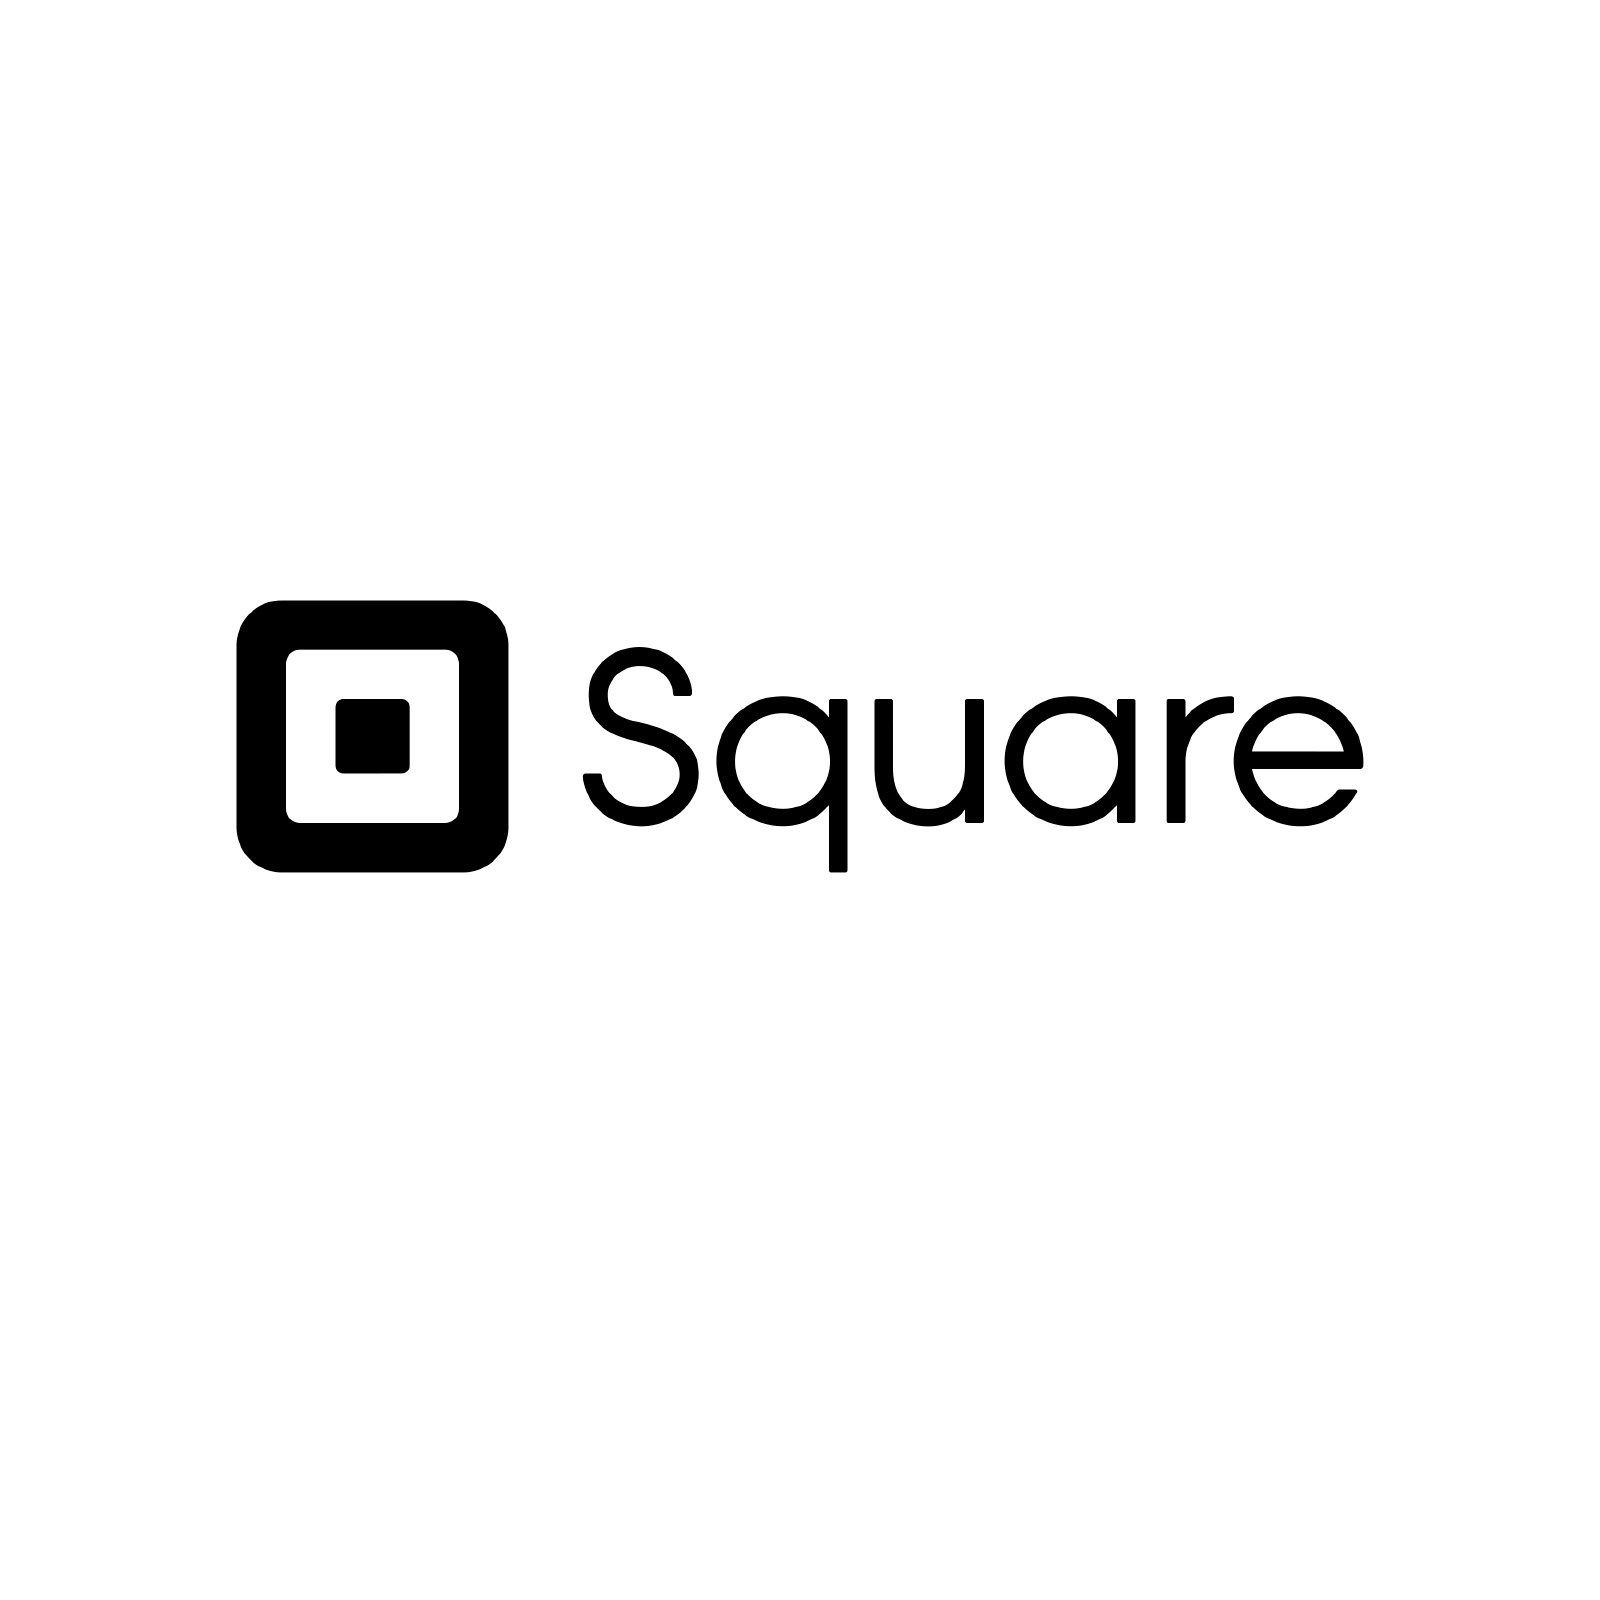 square-logo-black